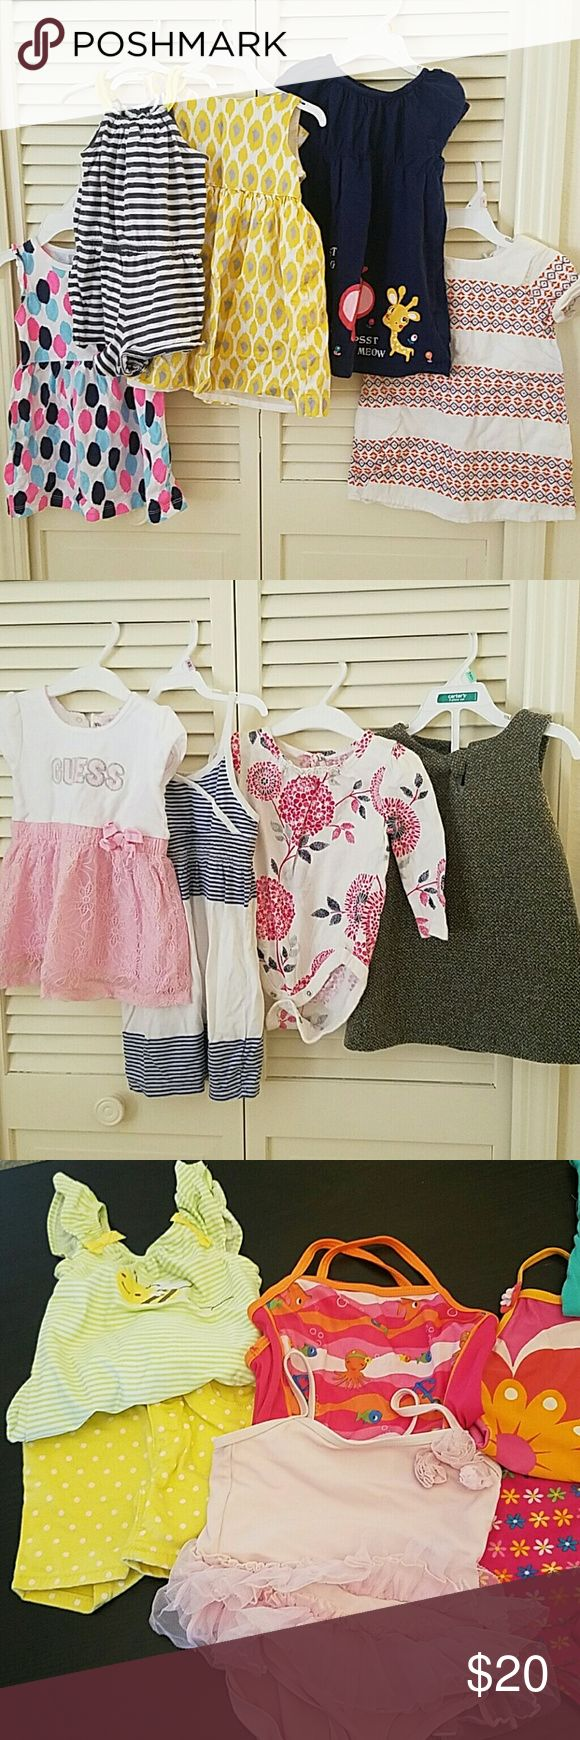 BUNDLE OF 12-24 MONTHS GIRLS' CLOTHES Baby girls' clothes in great condition. 10 dresses (one has stain as pictured), 1 romper, 3 tops, 1 pair of shorts, 5 swimsuits, 11 bodysuits (two has a stains as pictured). Mixed brands such as Carter's, Zara babyGap, and Guess. babyGap Dresses